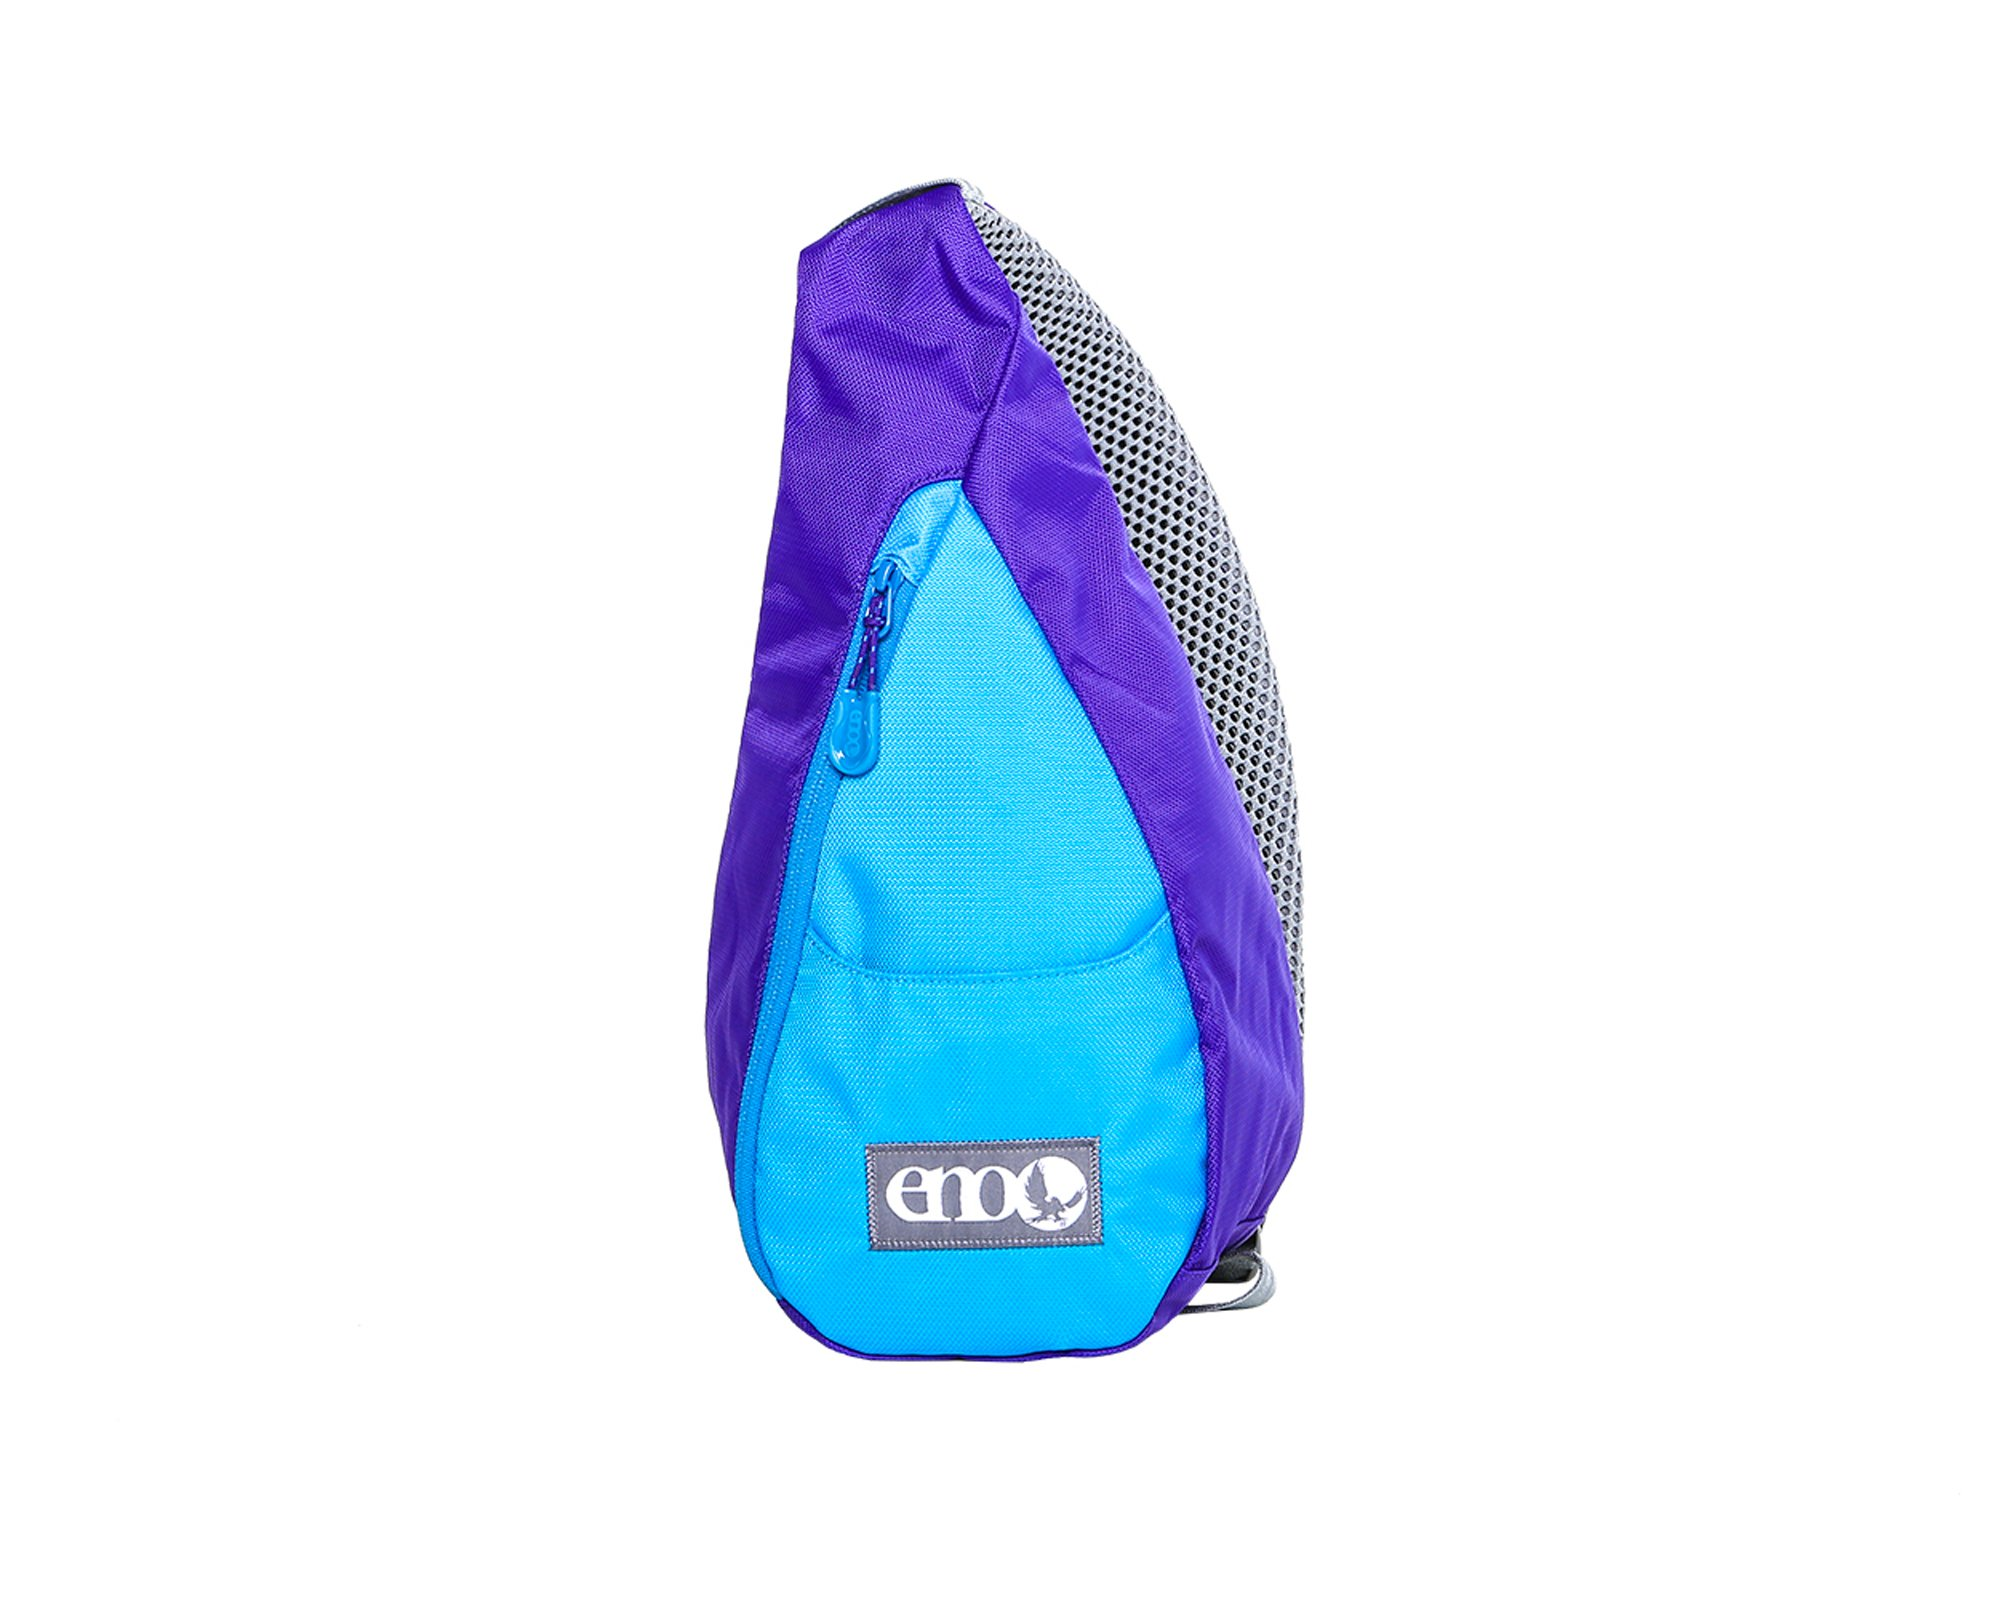 Eagles Nest Outfitters ENO Possum Pocket Sling Backpack, Purple/Teal, Purple/Teal, One Size